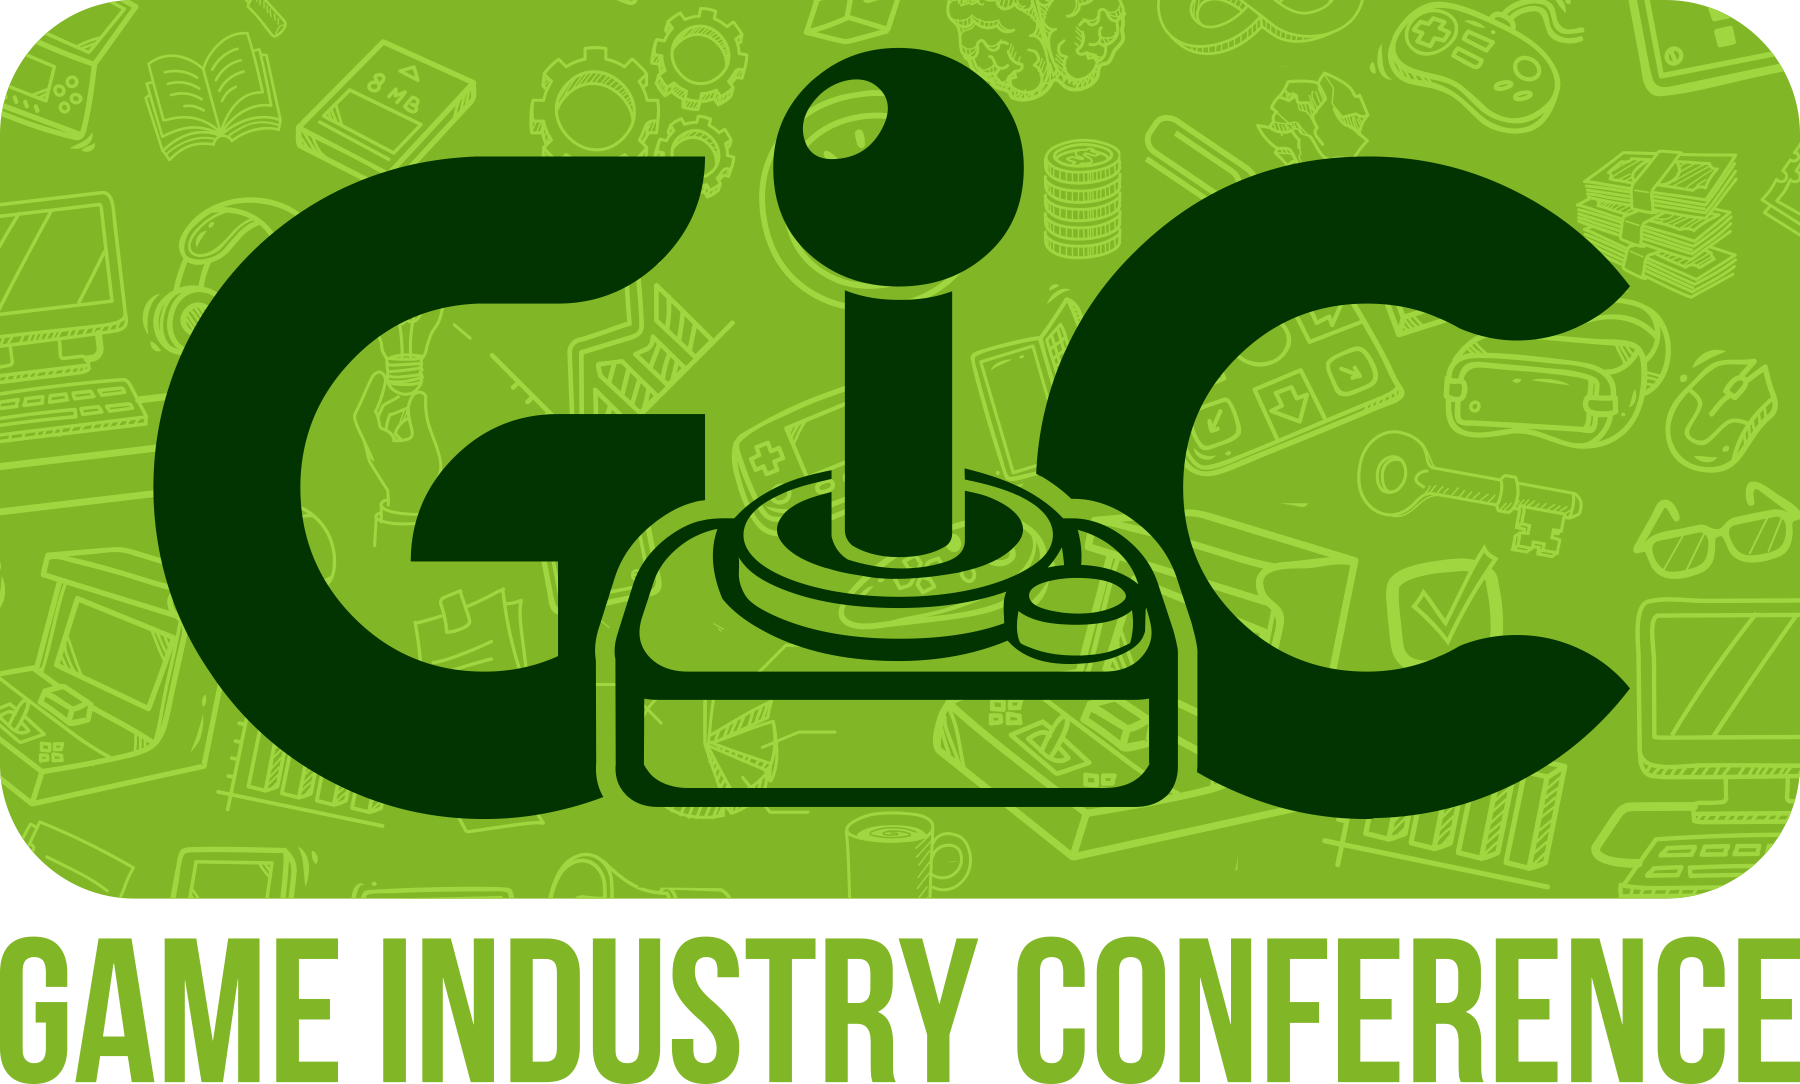 GameIndustryConference